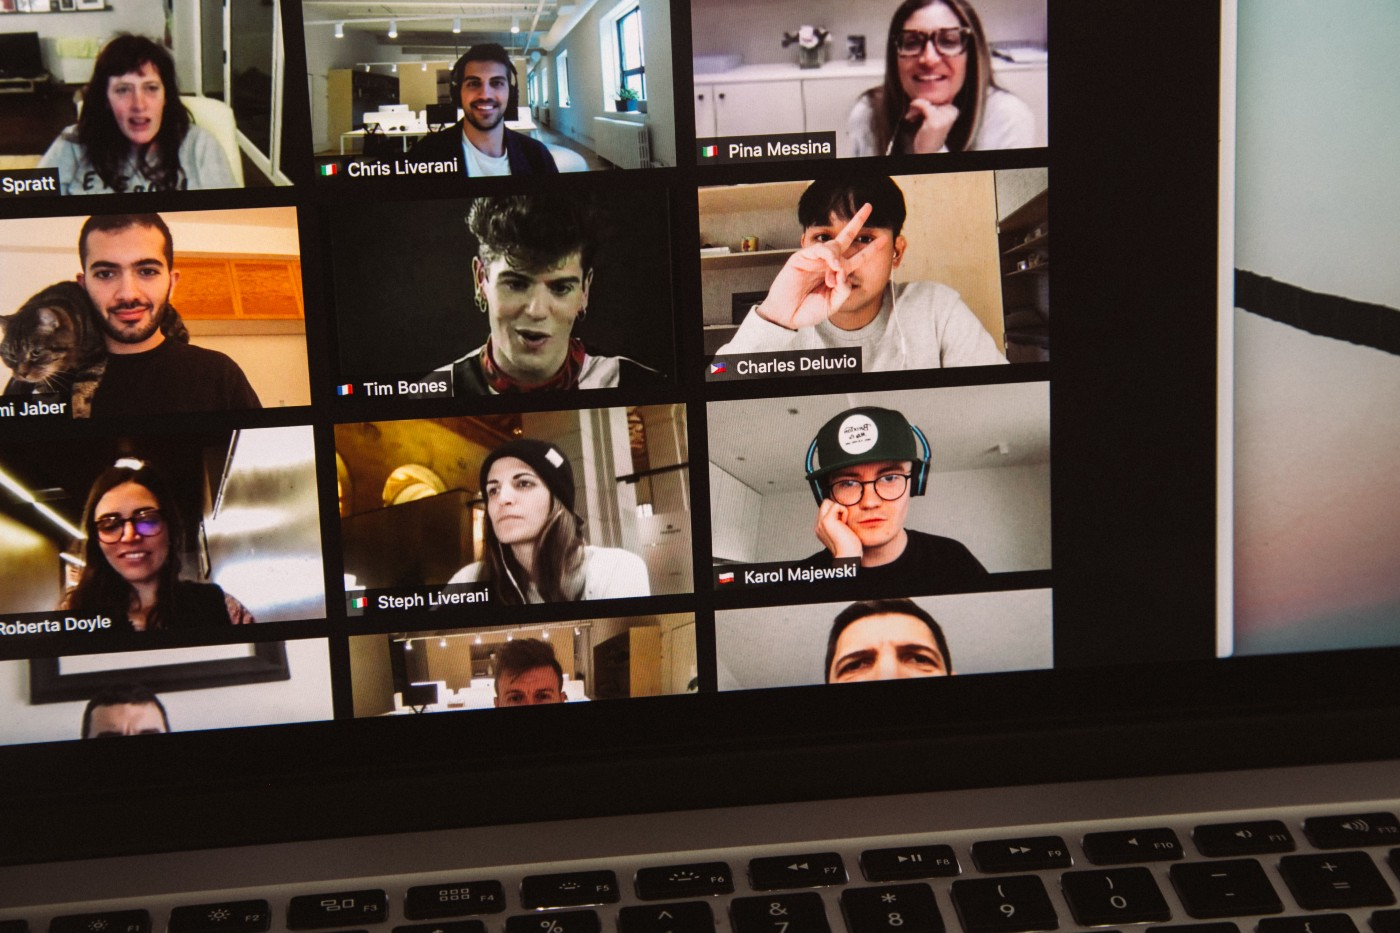 Online team meeting via Zoom